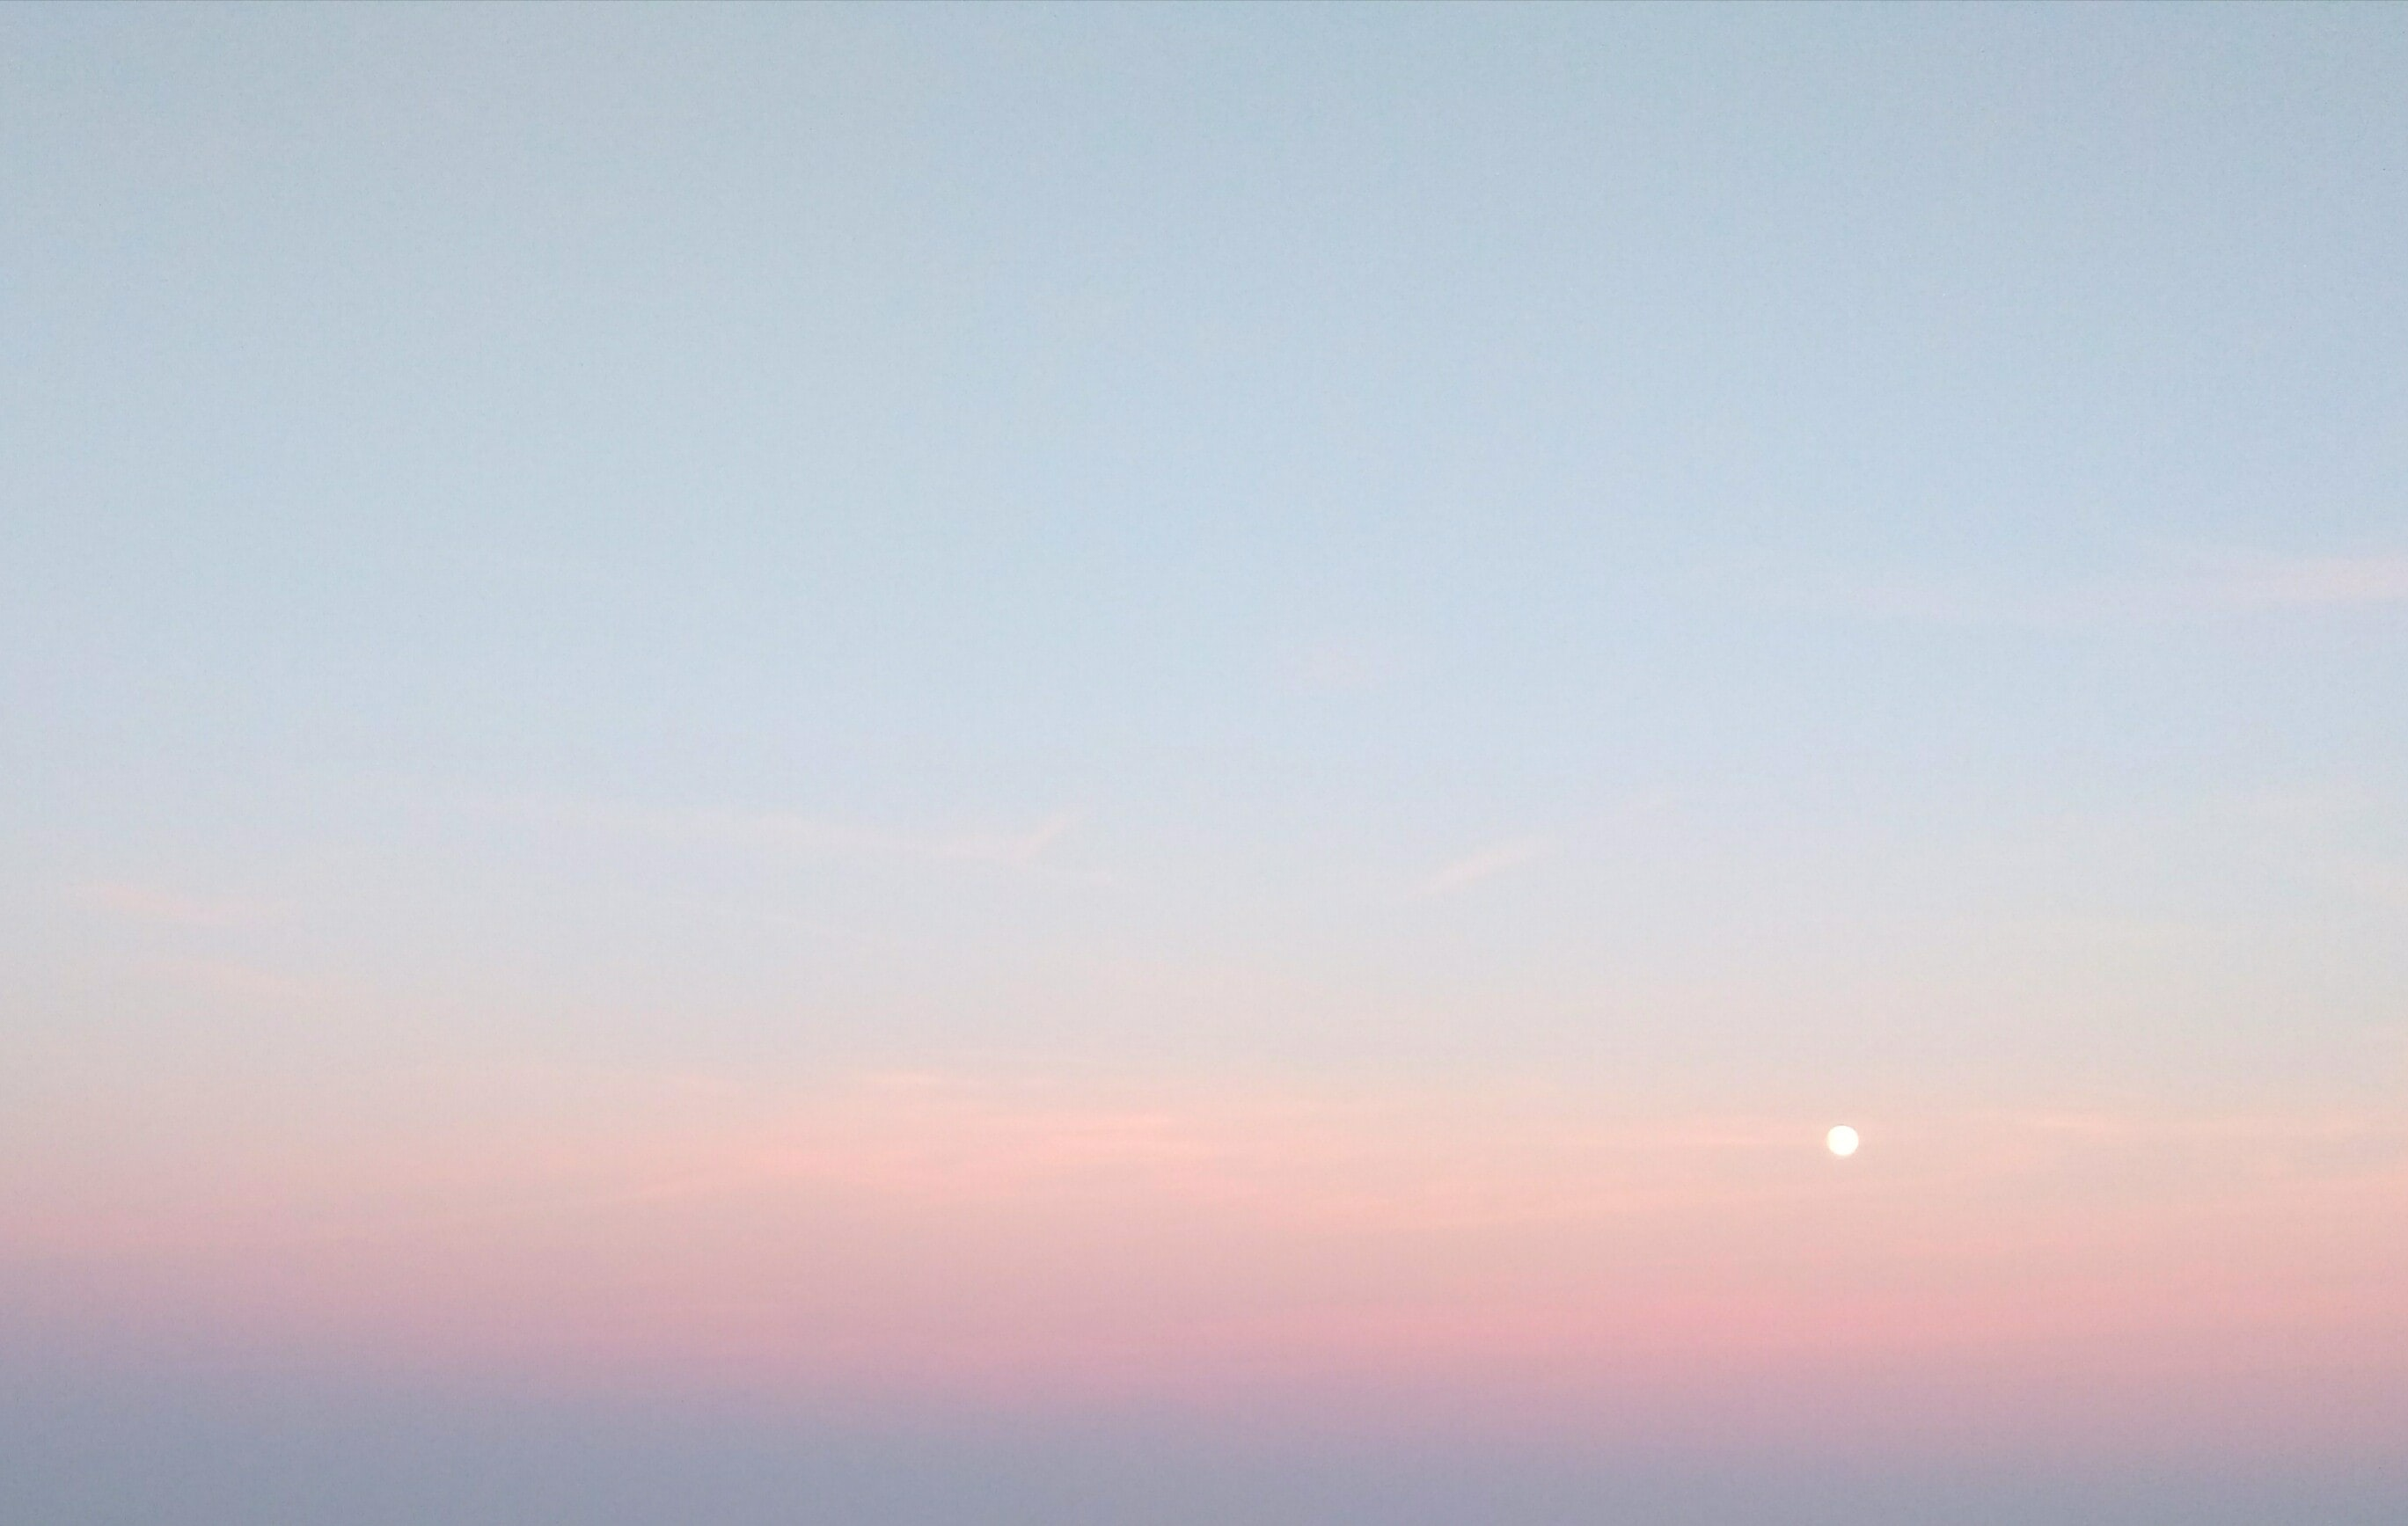 worms eye view photography of gray and pink sky